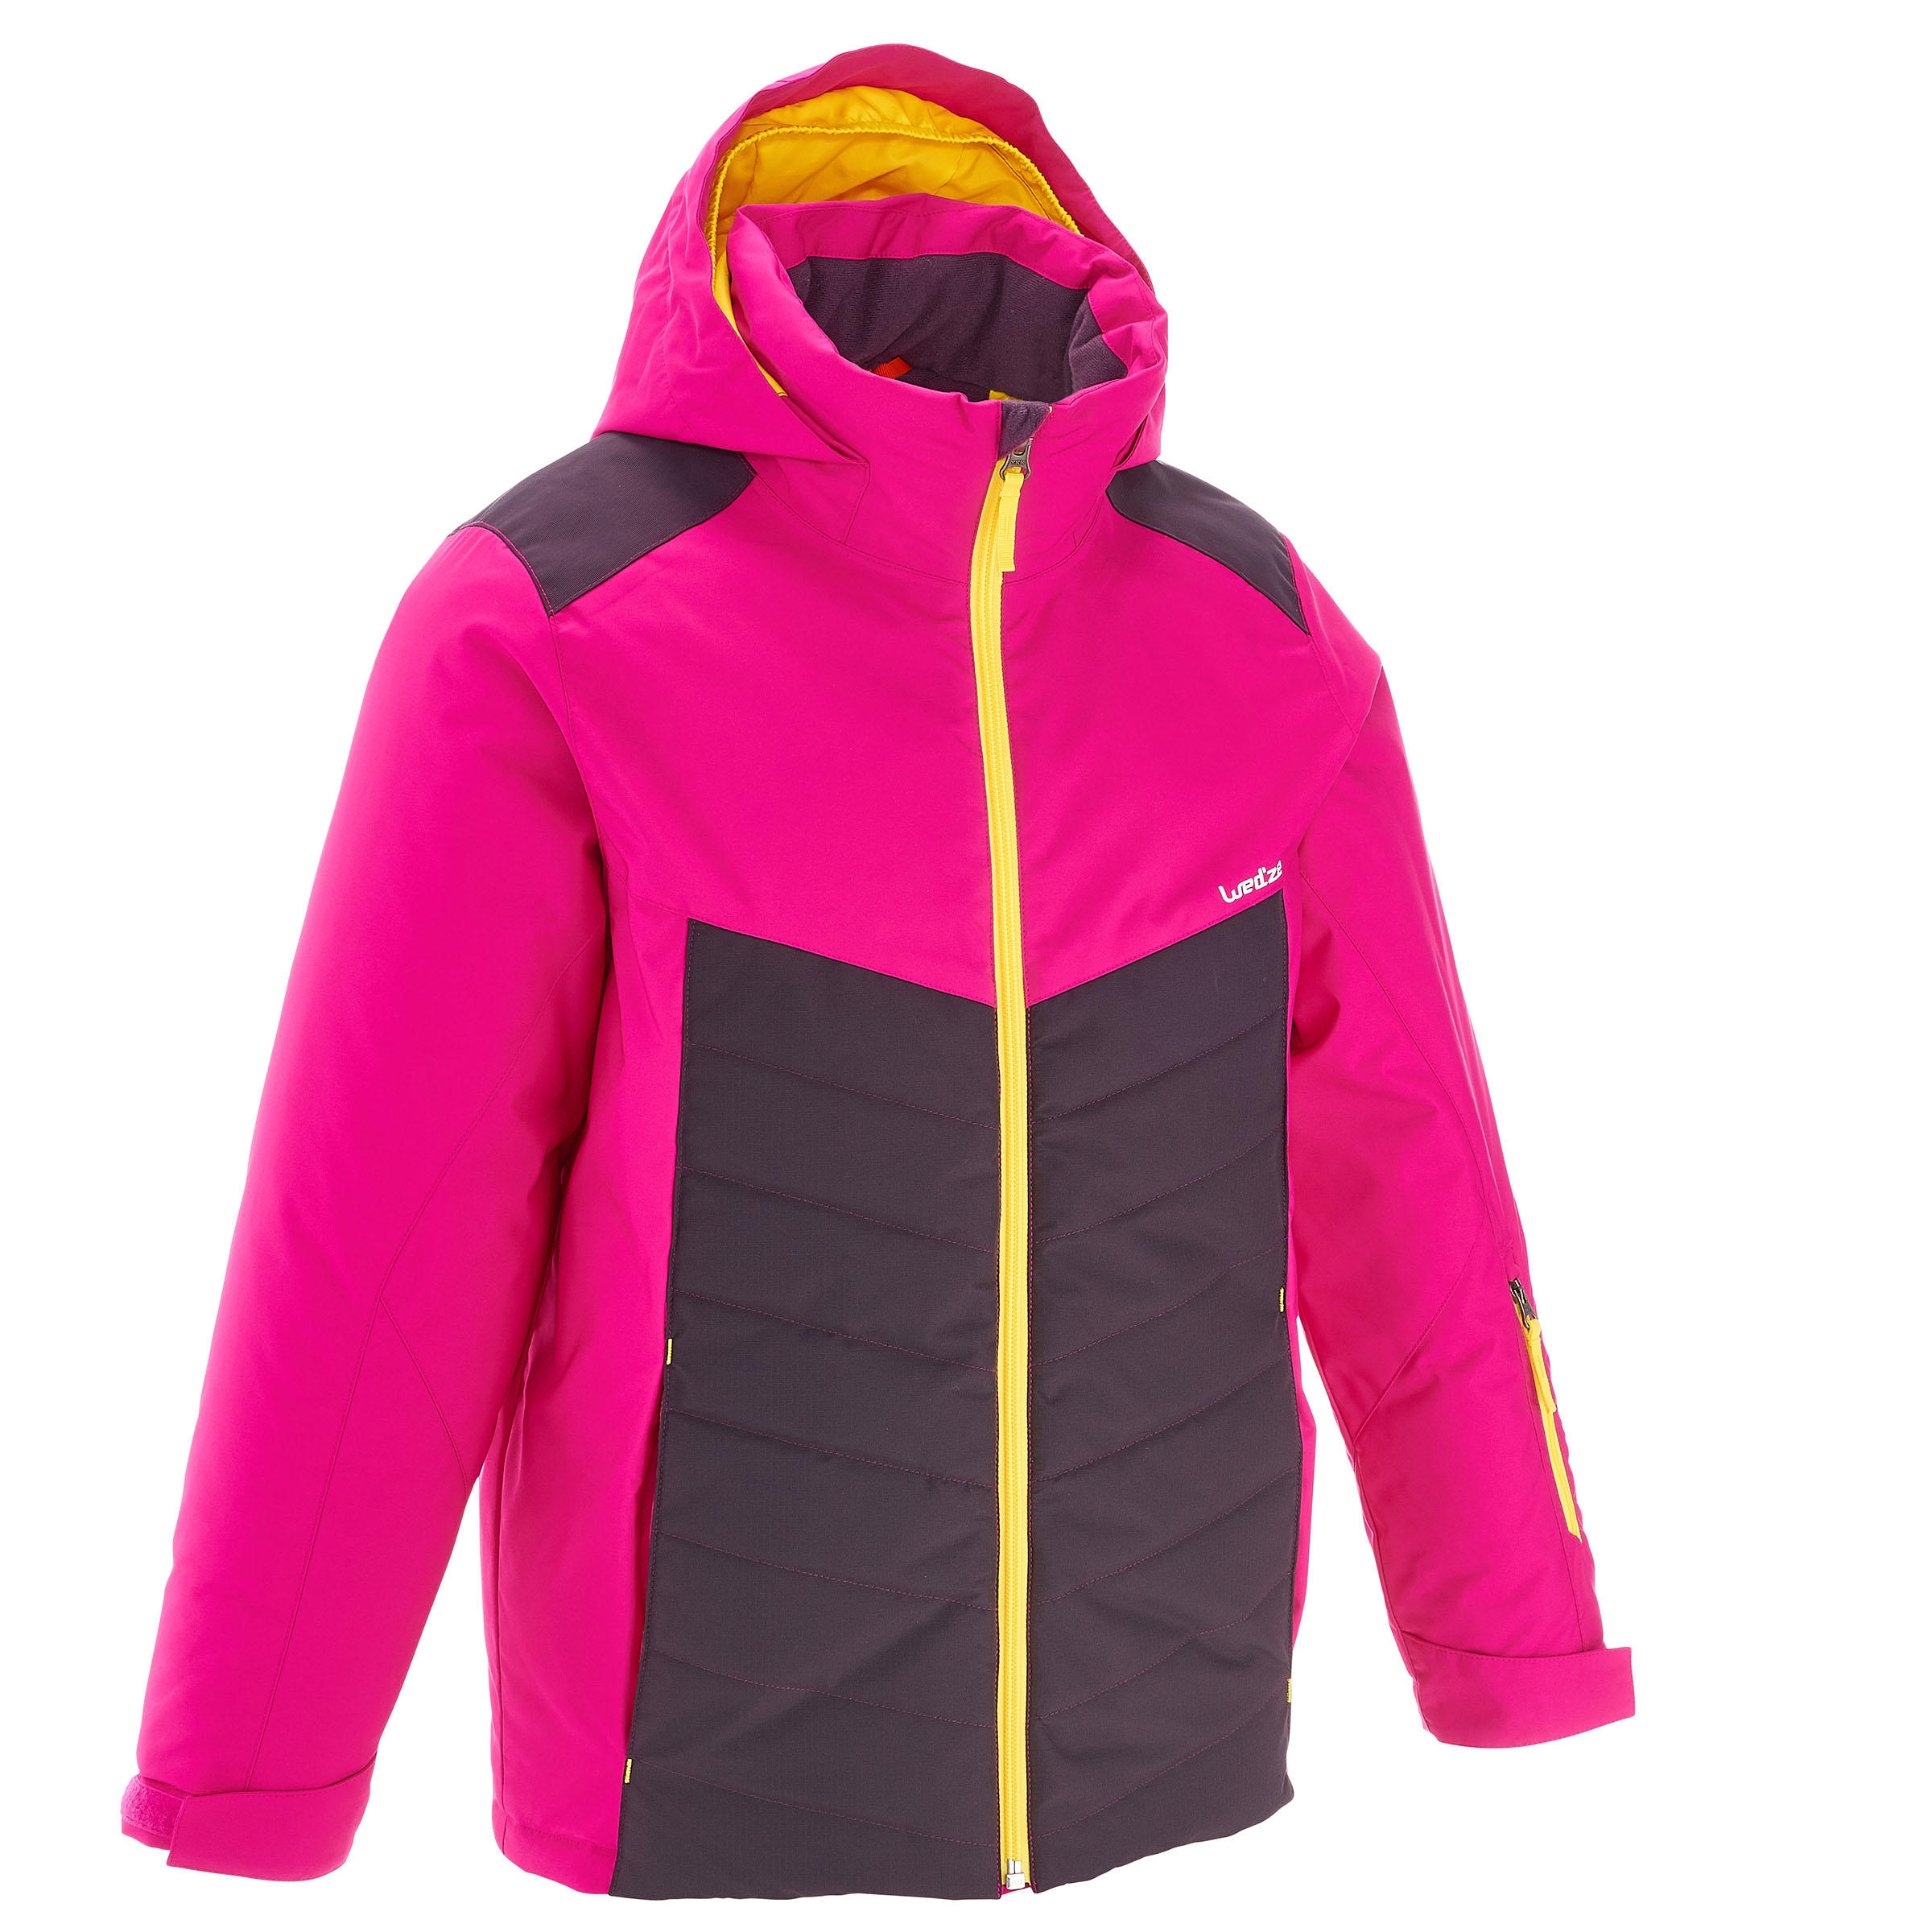 Ski-P 500 Girl's Ski Jacket - Pink/Purple